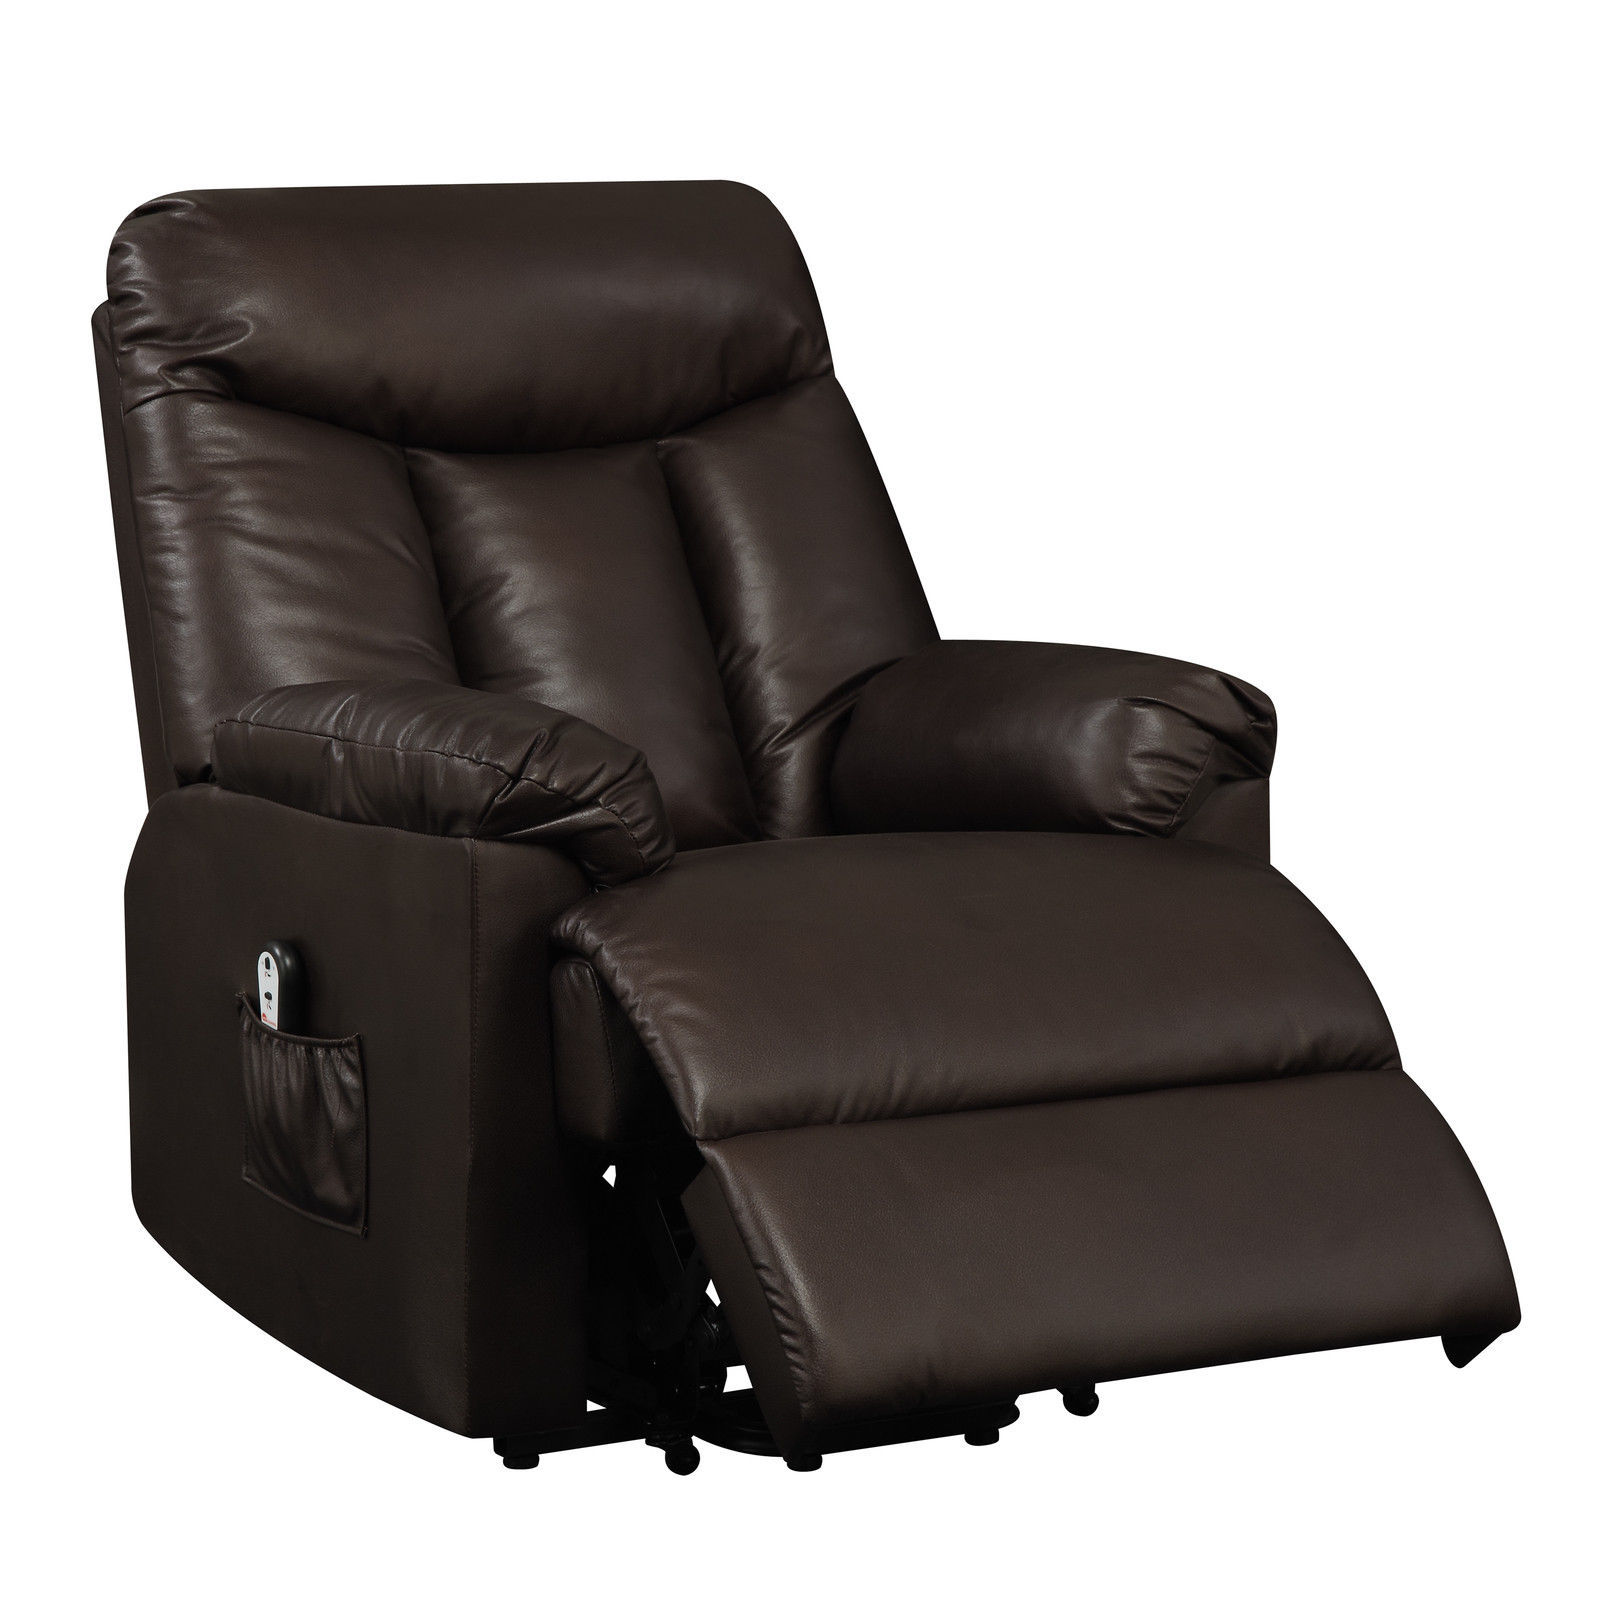 Electric Recliner Leather Chairs Electric Lift Chair Recliner Brown Leather Power Motion